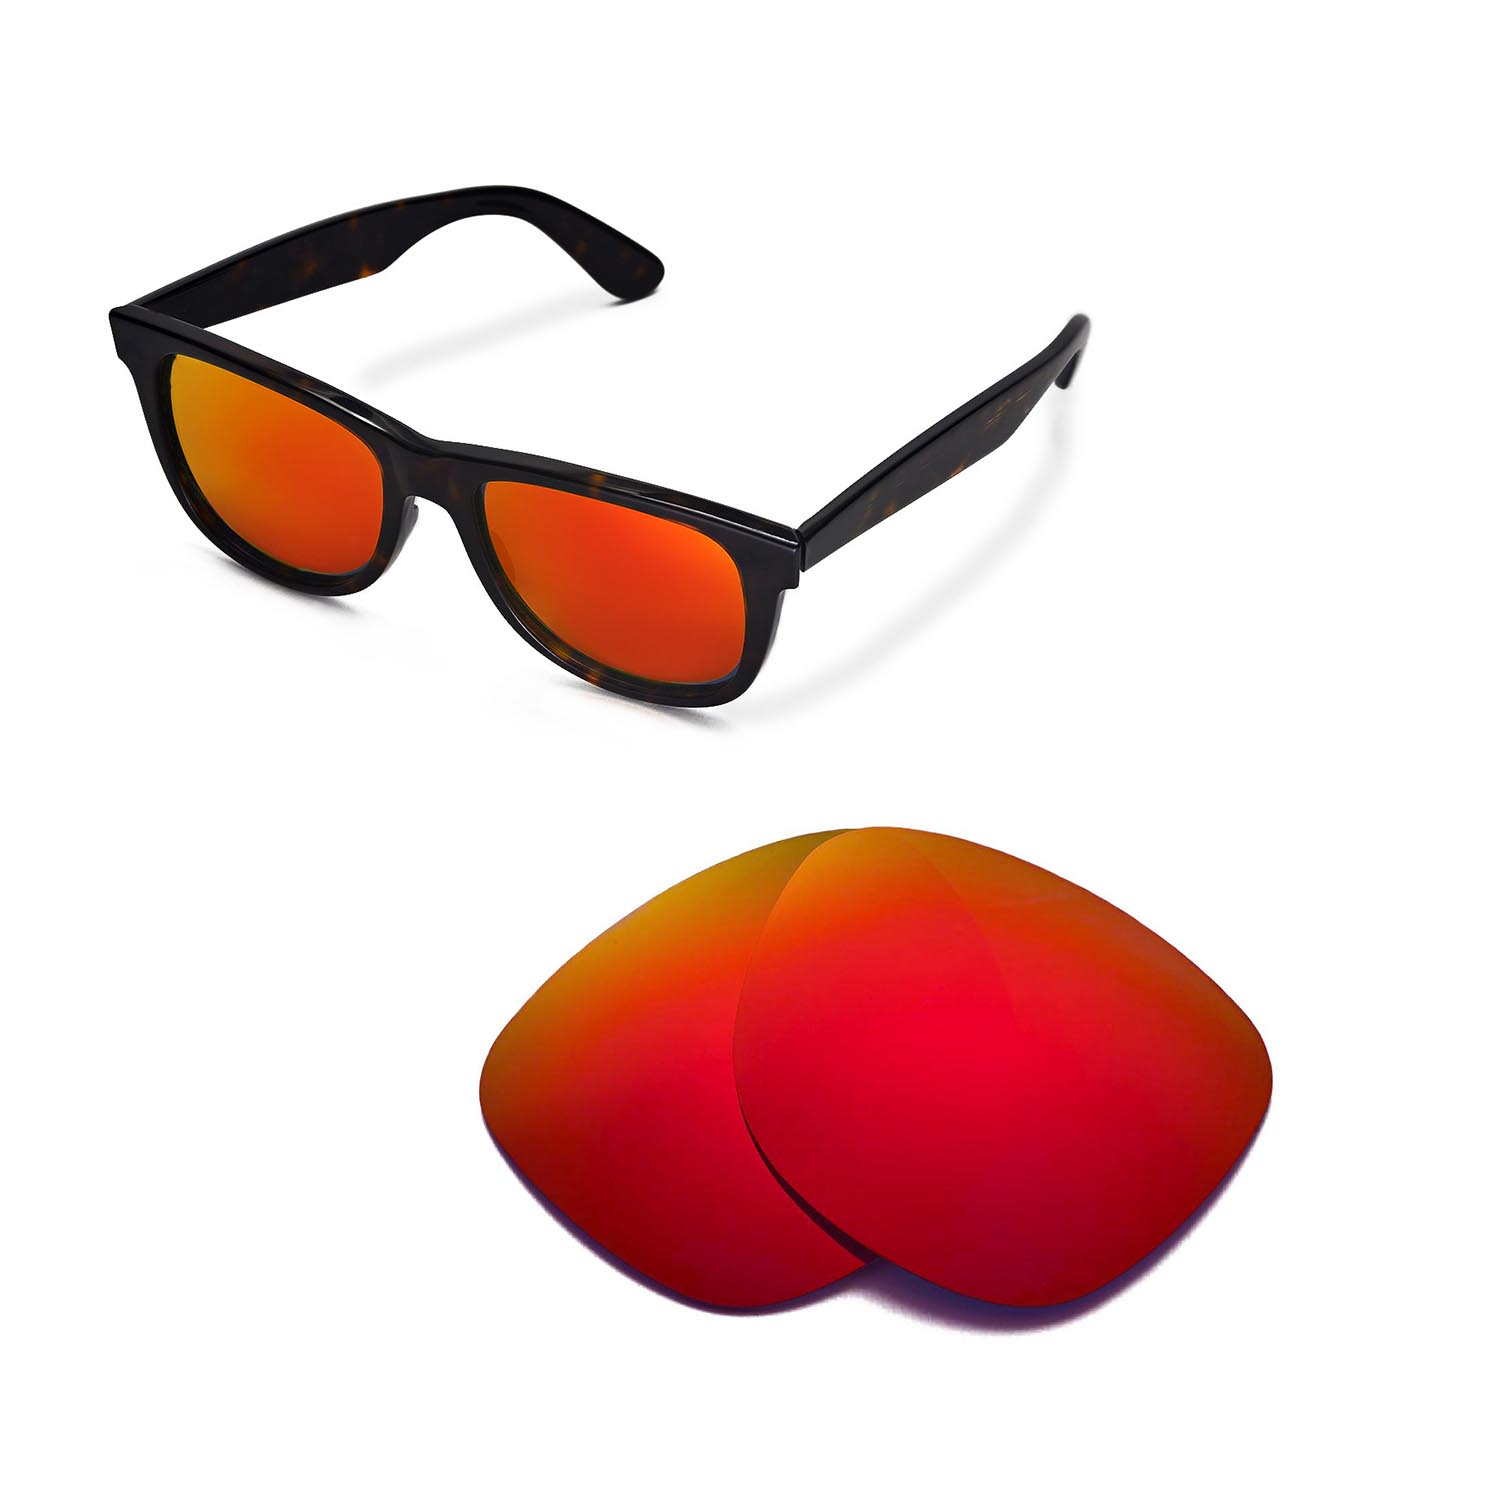 0f1ccc0a934 New Walleva Polarized Fire Red Lenses For Ray-Ban Wayfarer RB2140 ...